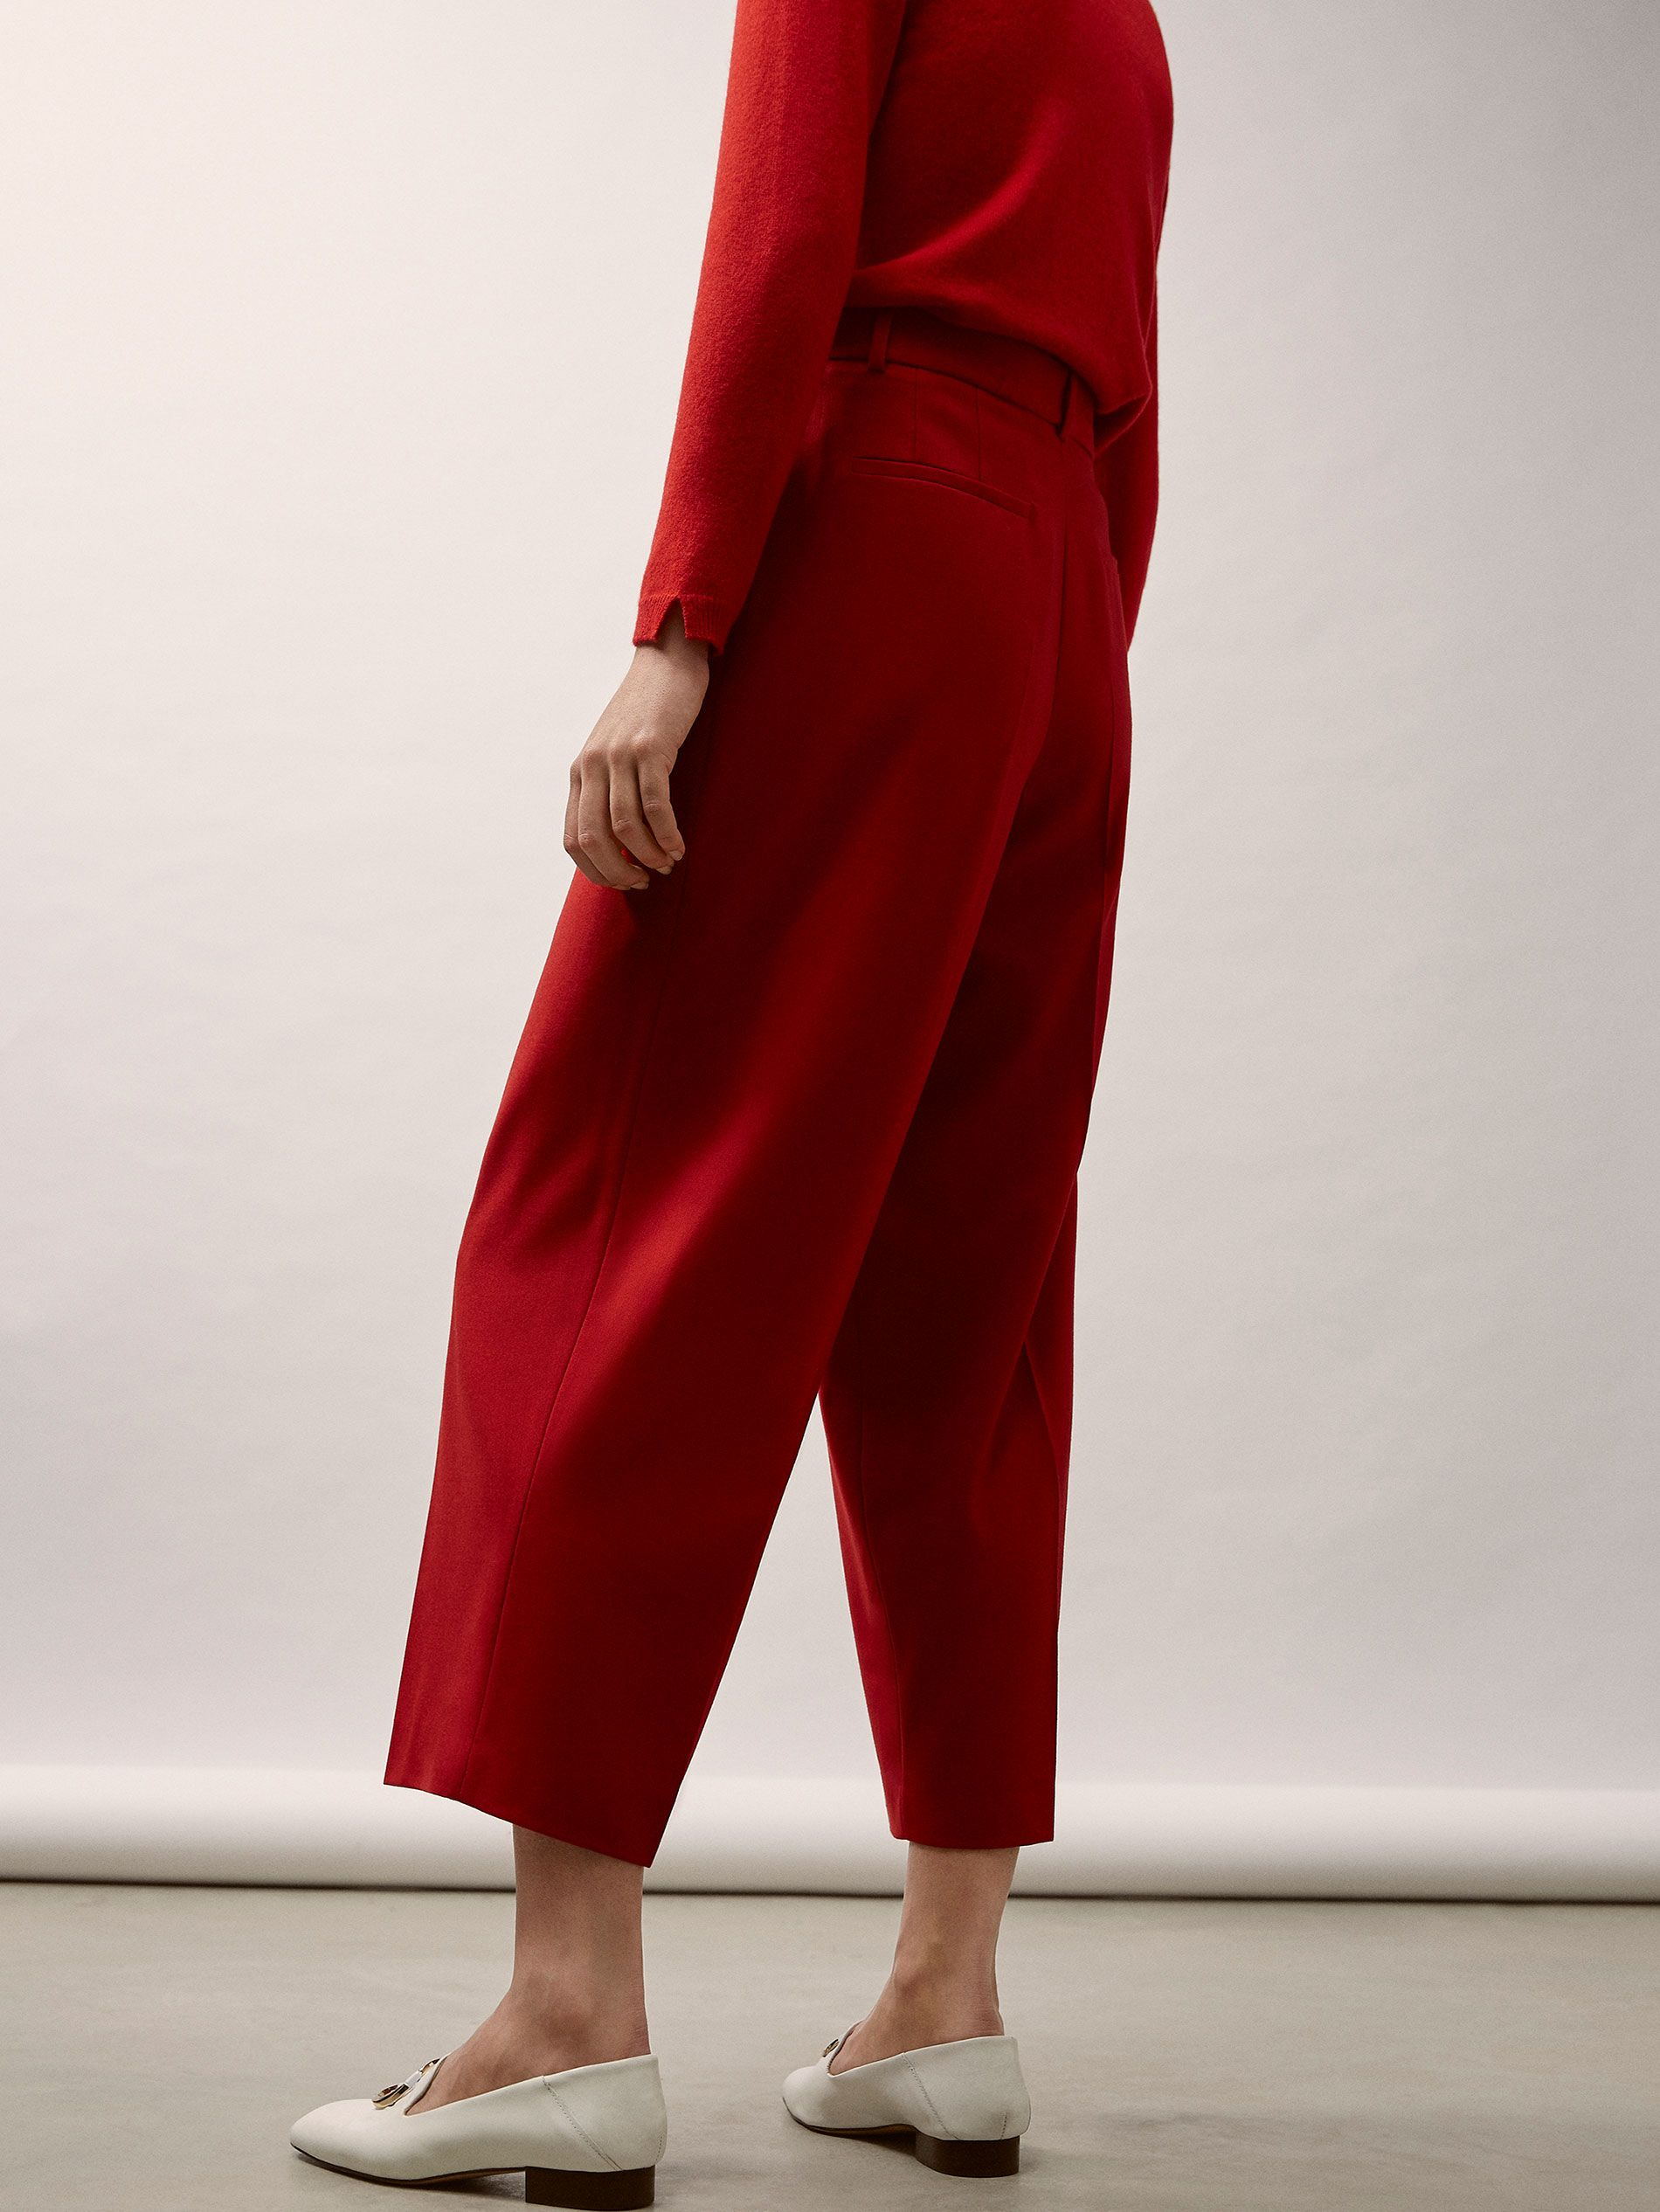 6994f79adb9 CROPPED FIT RED WOOL SUIT TROUSERS WITH DARTS DETAIL - Women - Massimo Dutti